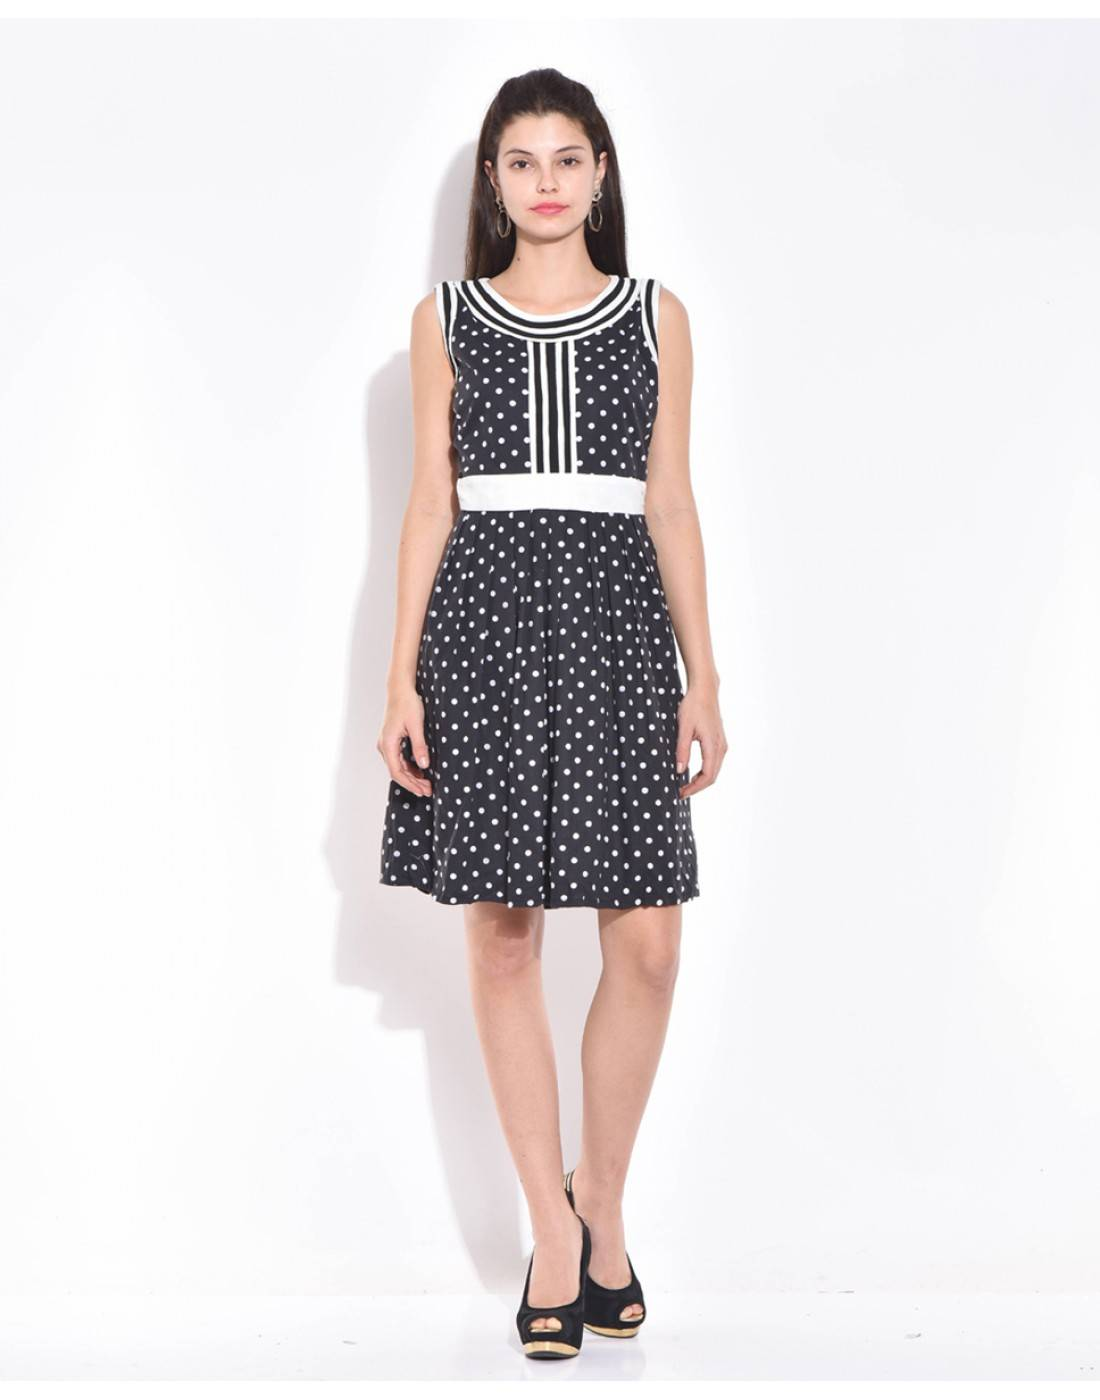 Black-White Polka Dot Dress